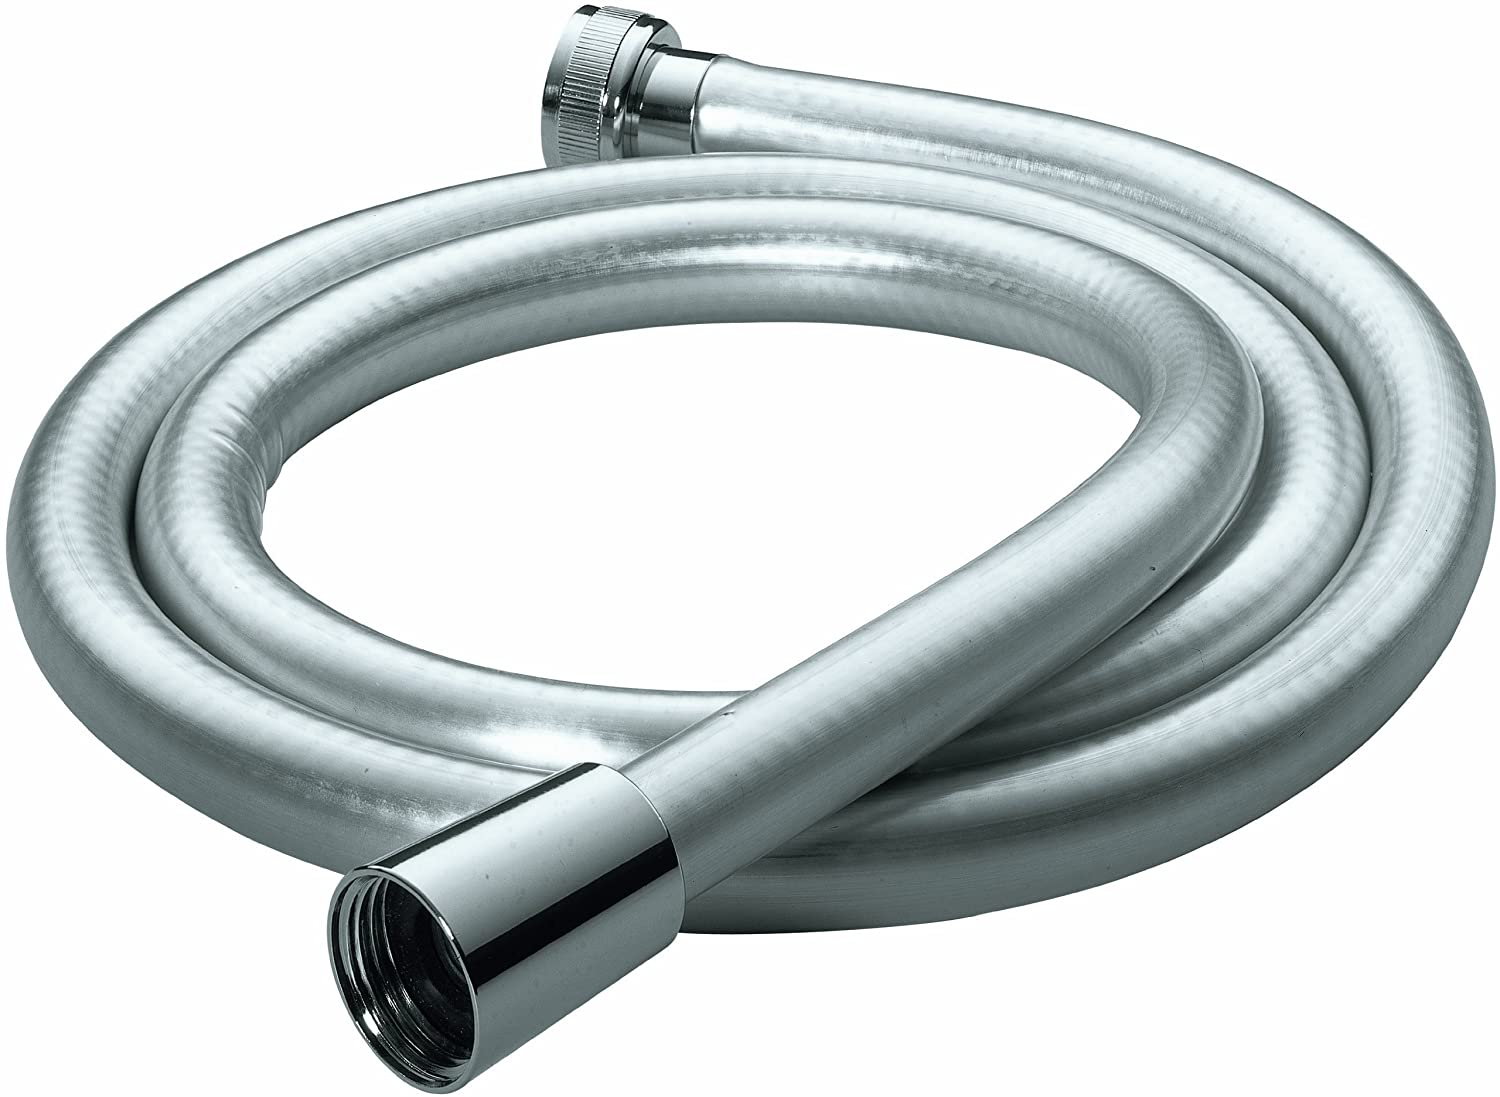 Ideal Standard Shower Hose 1/2  x 1/2-Inch x 175  cm Chrome, A4109AA